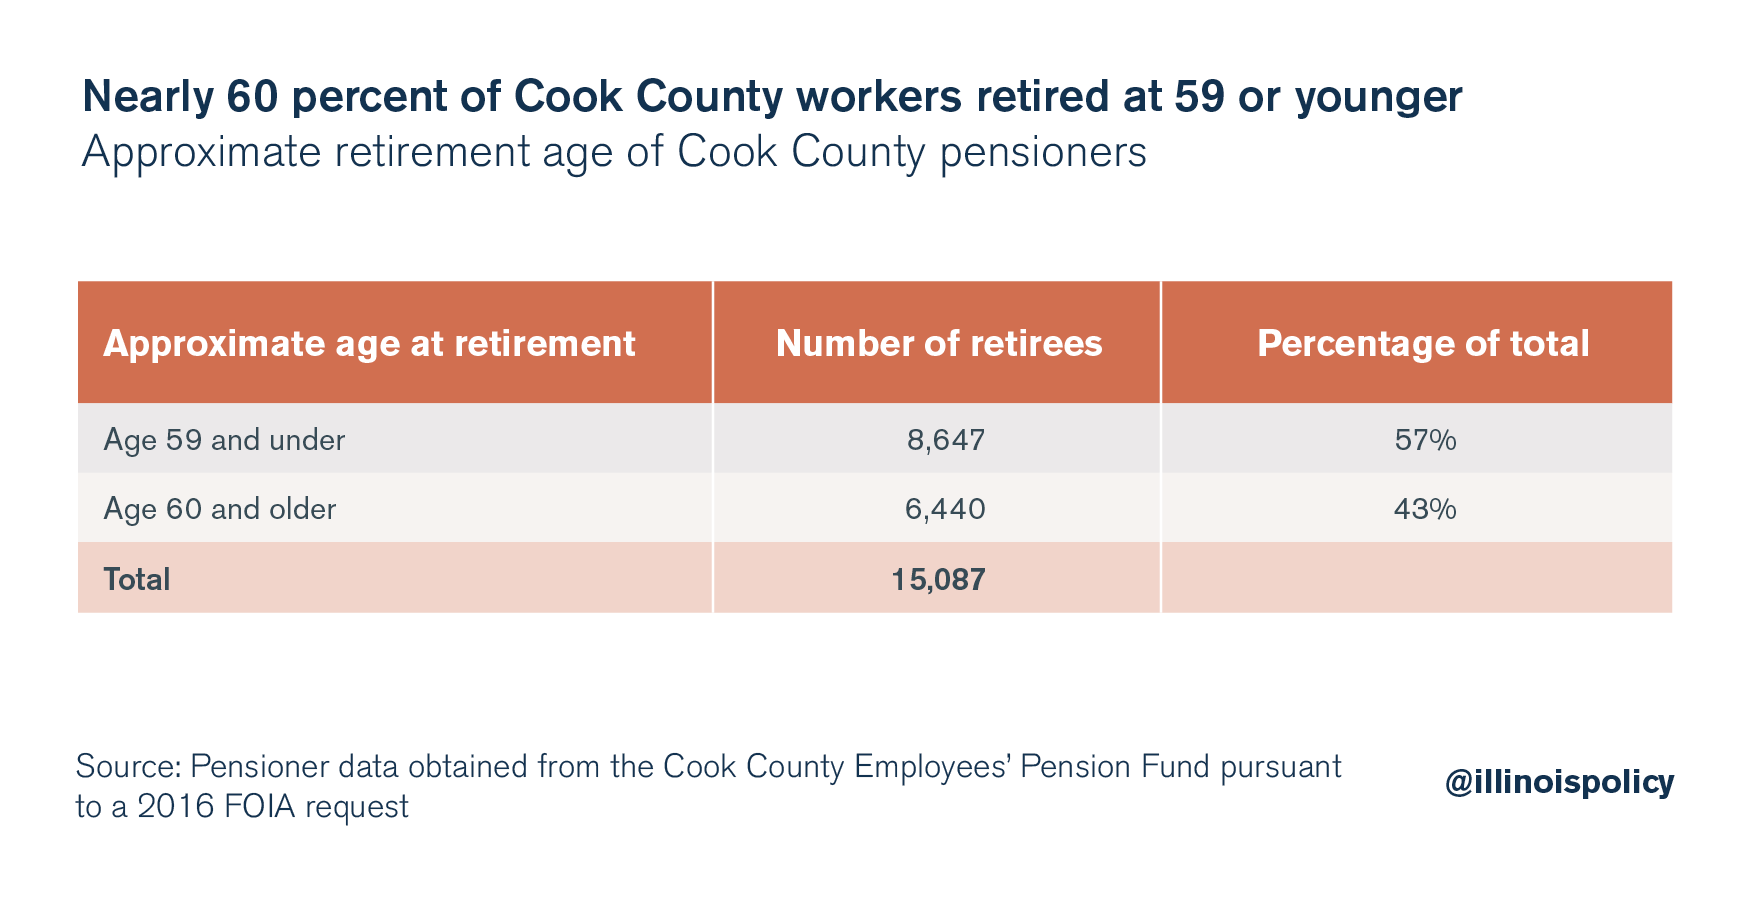 Nearly 60 percent of Cook County workers retired at 59 or younger